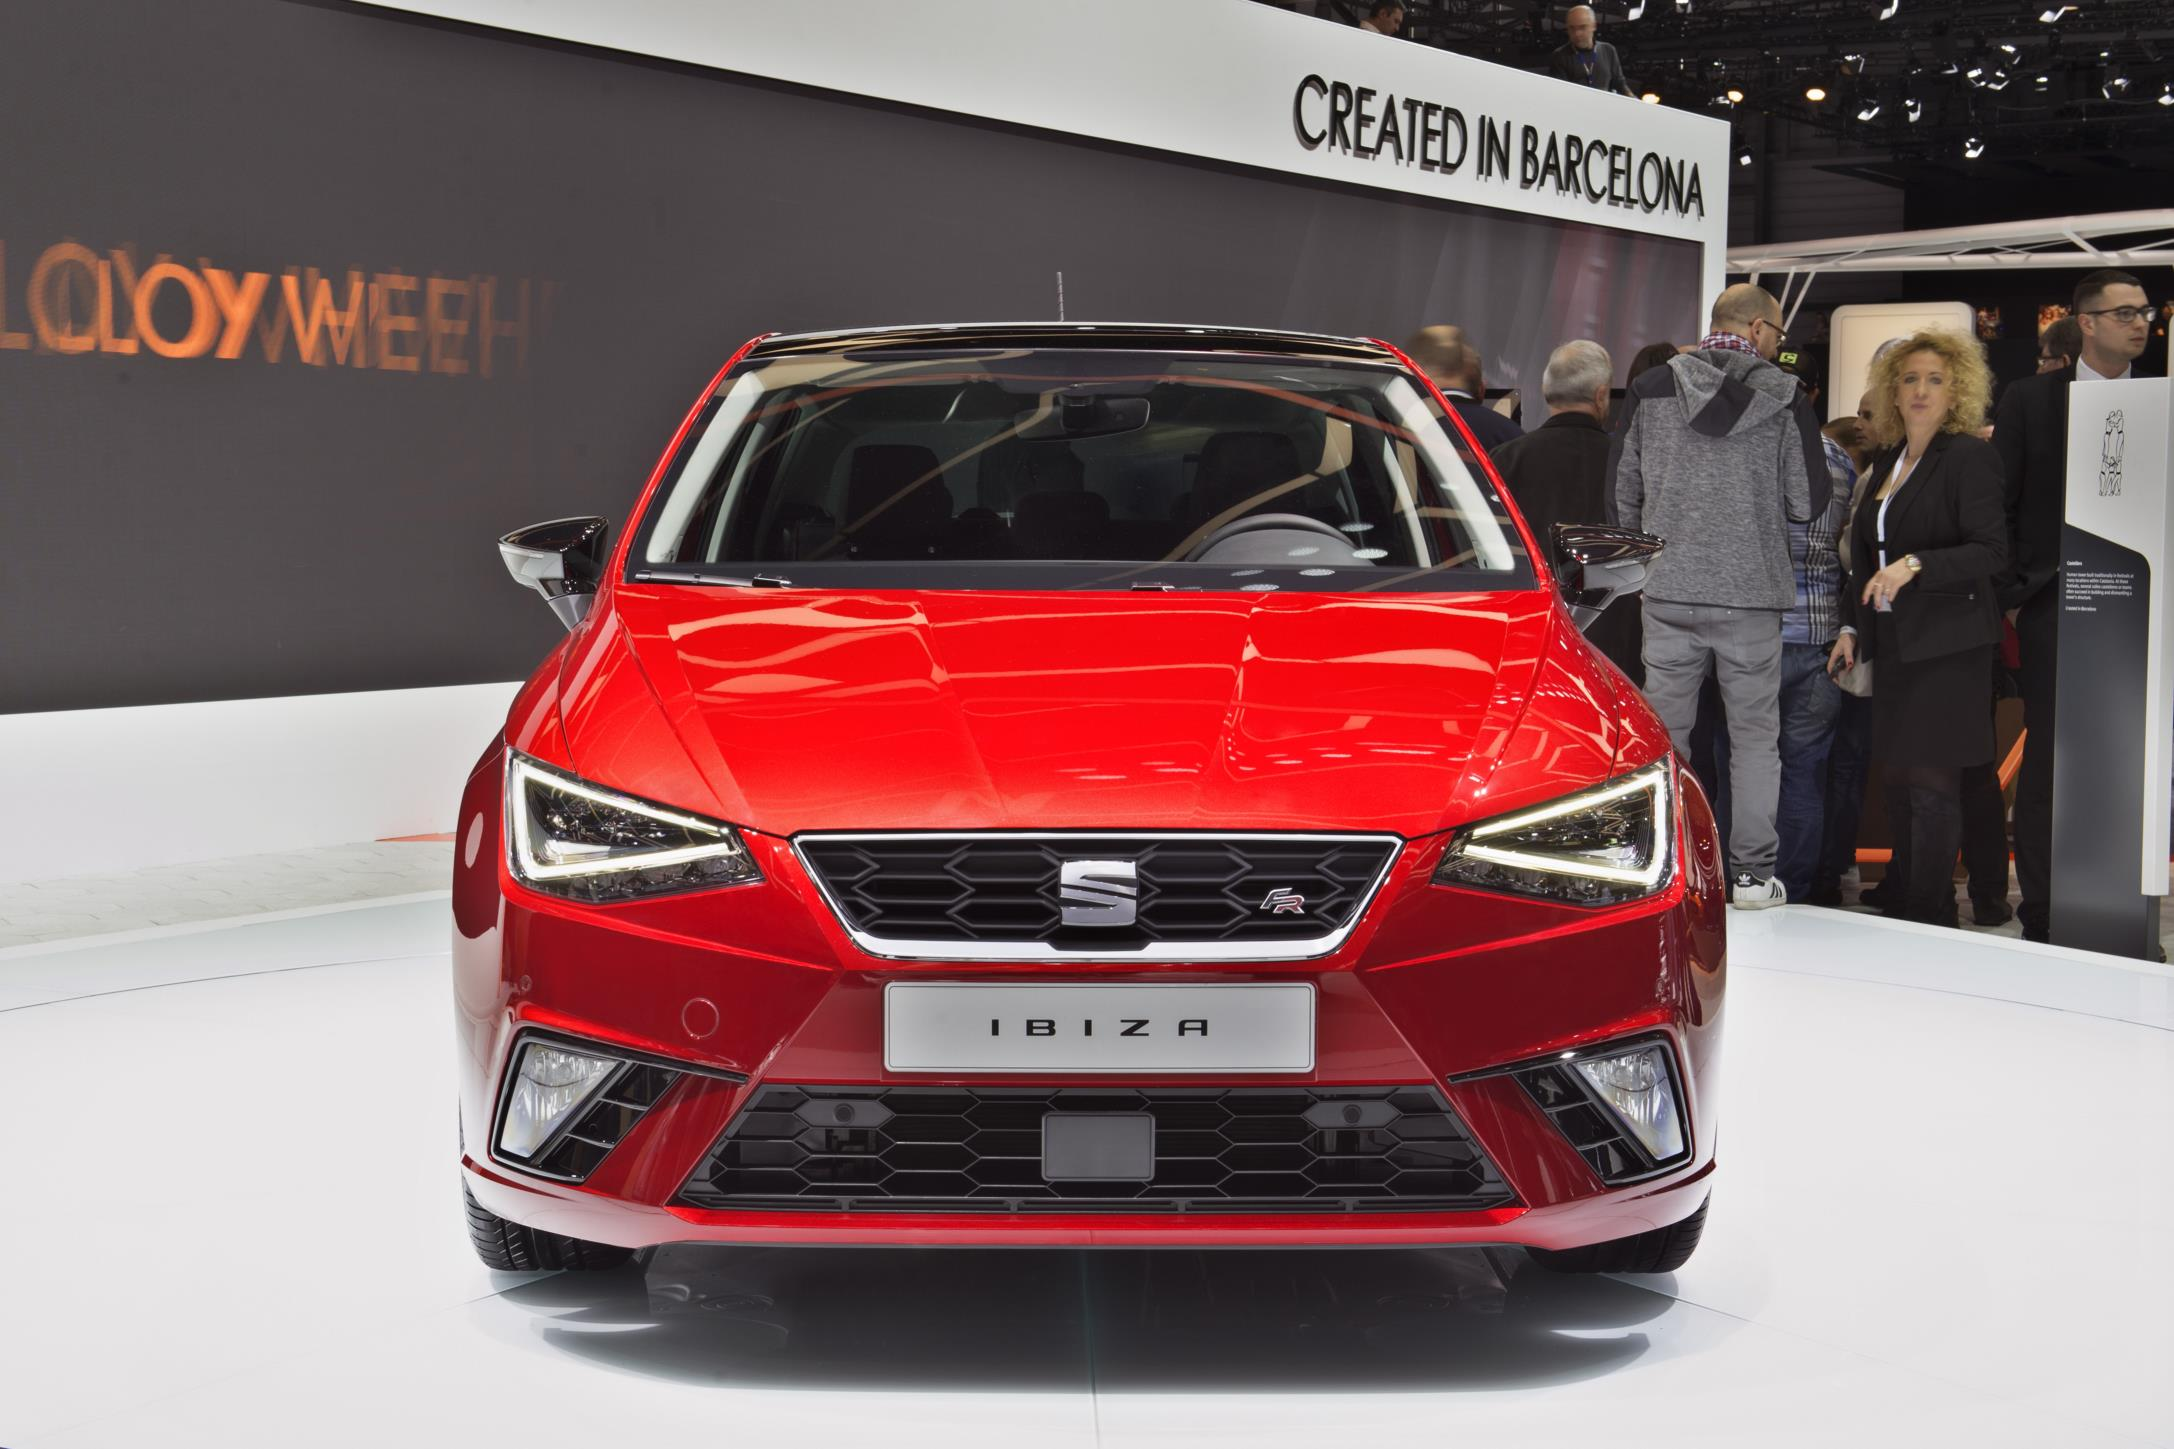 Seat Ibiza is affected by the 2018 seatbelt alert